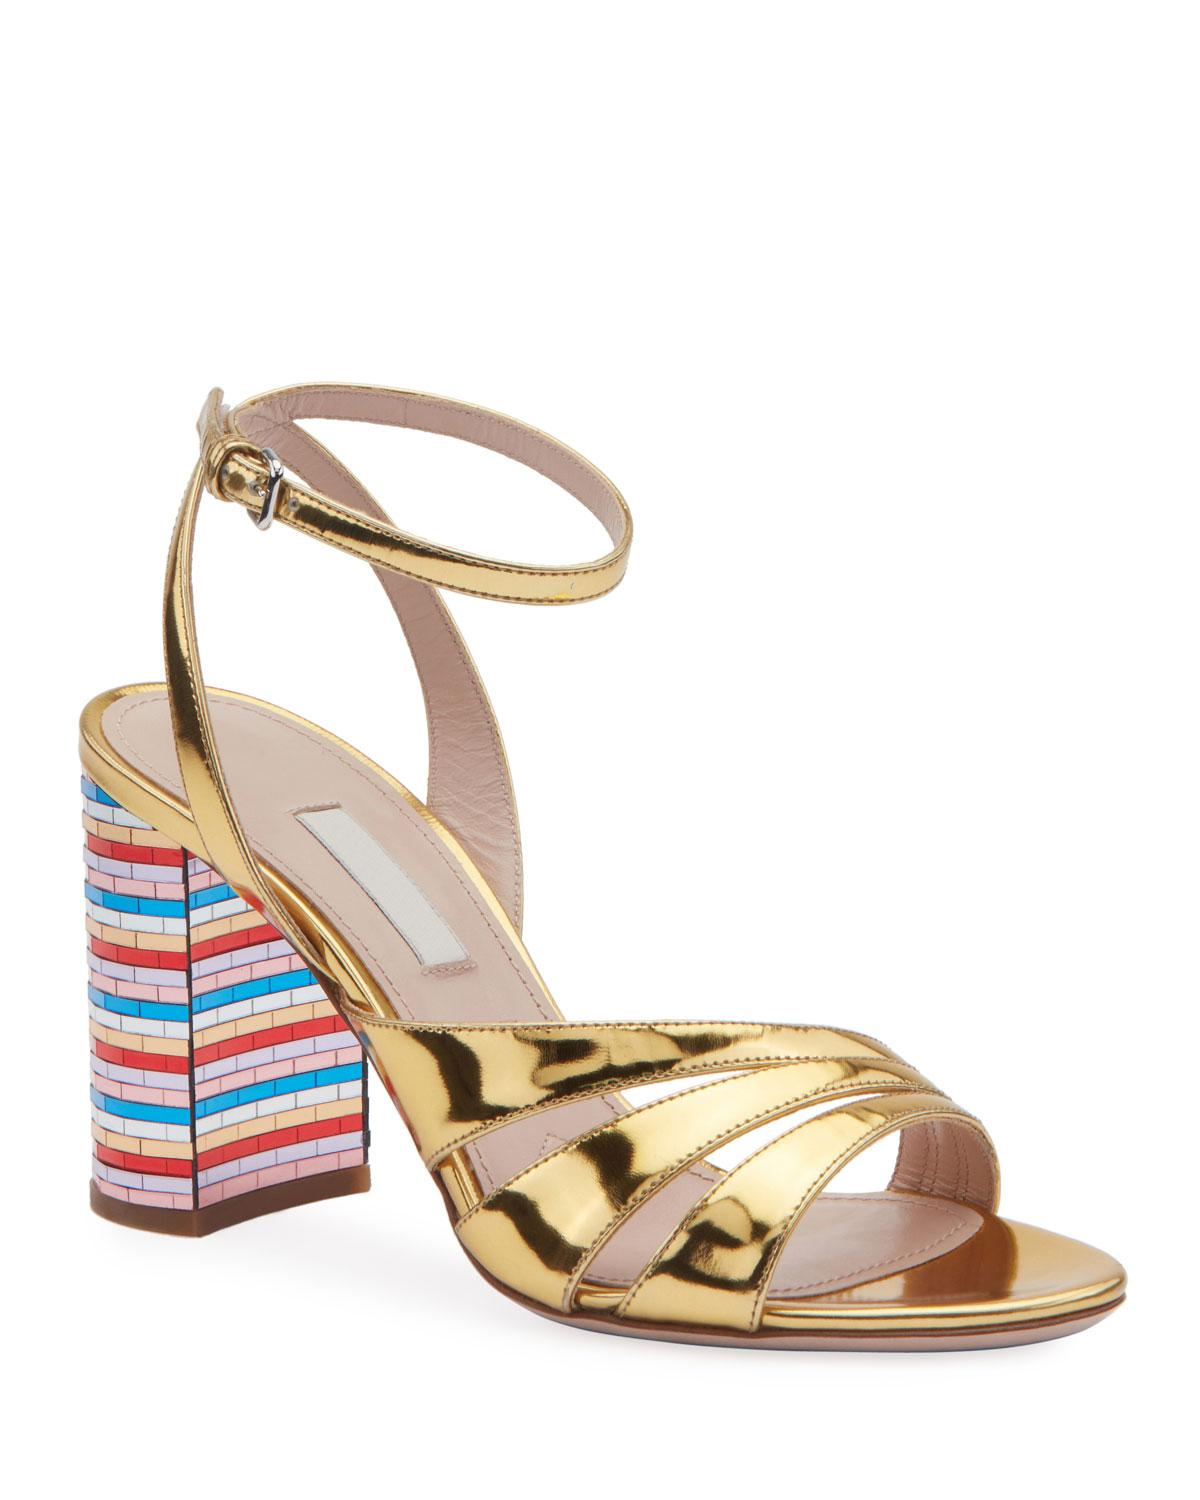 d33f29be5a6 Lyst - Miu Miu Metallic Strappy Sandals With Rainbow Heel in Metallic